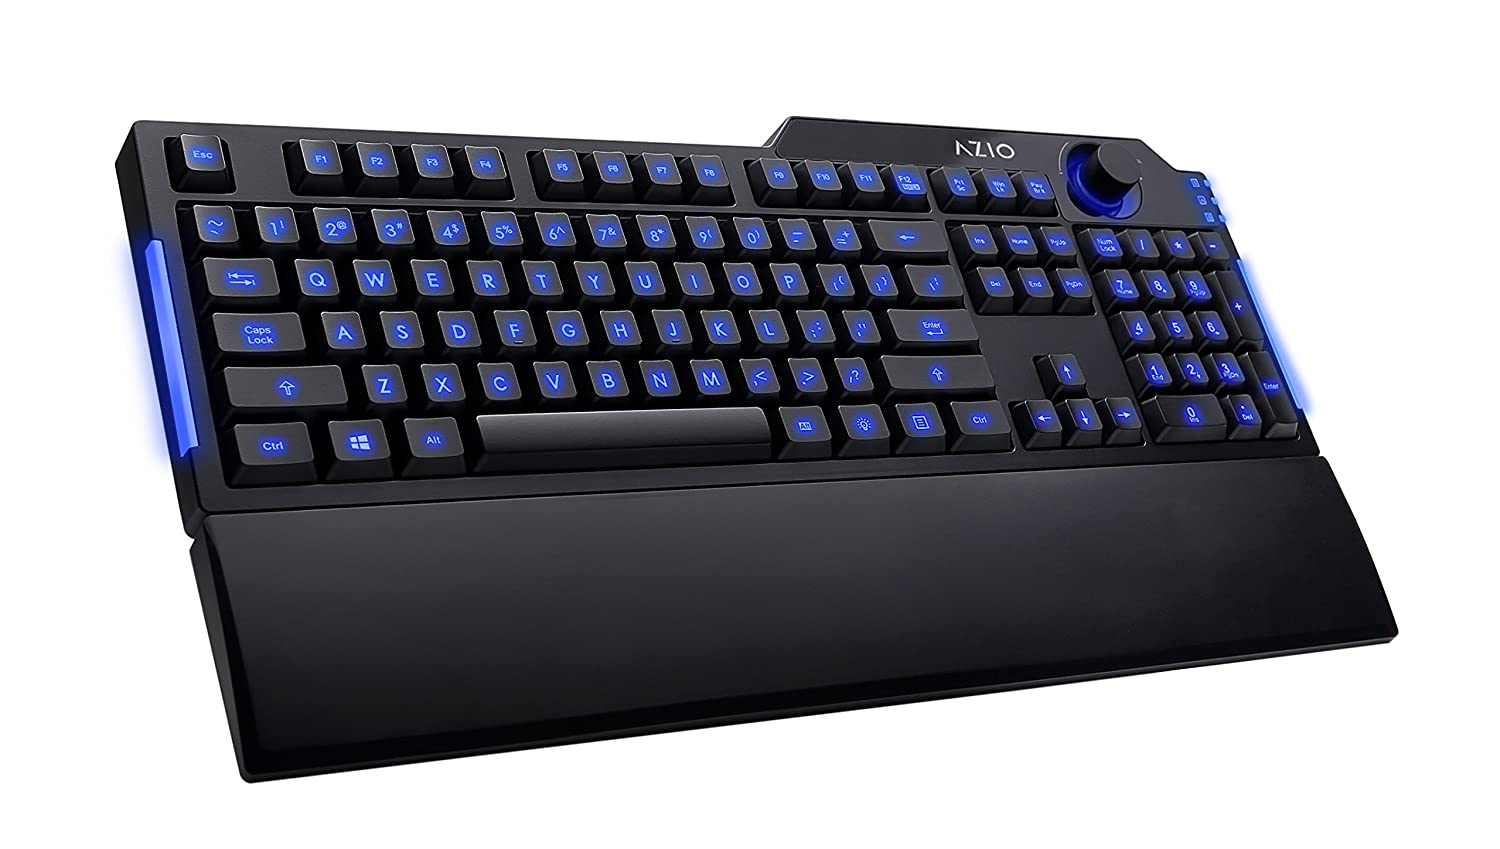 Best Cheap Wireless Keyboard And Mouse Combo Wiring Diagrams Rj 11 Jack Hook Switch To Phone Rj11 Hookswitch Phonejpg Azio Levetron L70 Led Backlit Gaming Black Kb501 For